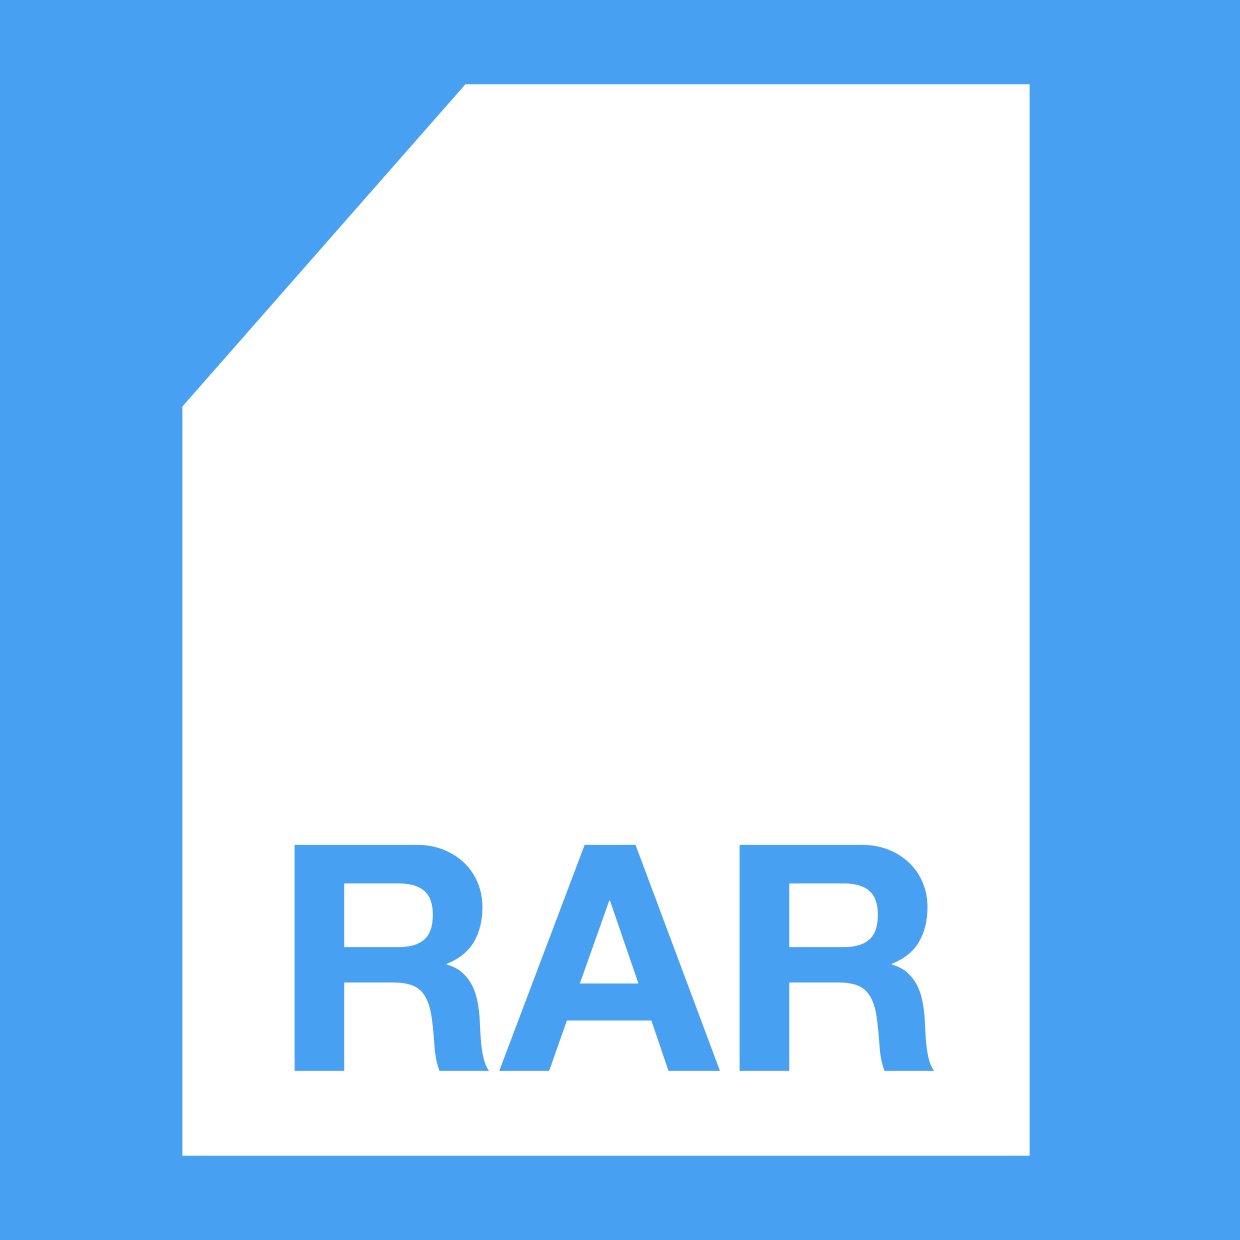 RAR Opener - RAR Opener is a fast, free app for extracting RAR files and converting them to .zip archives.